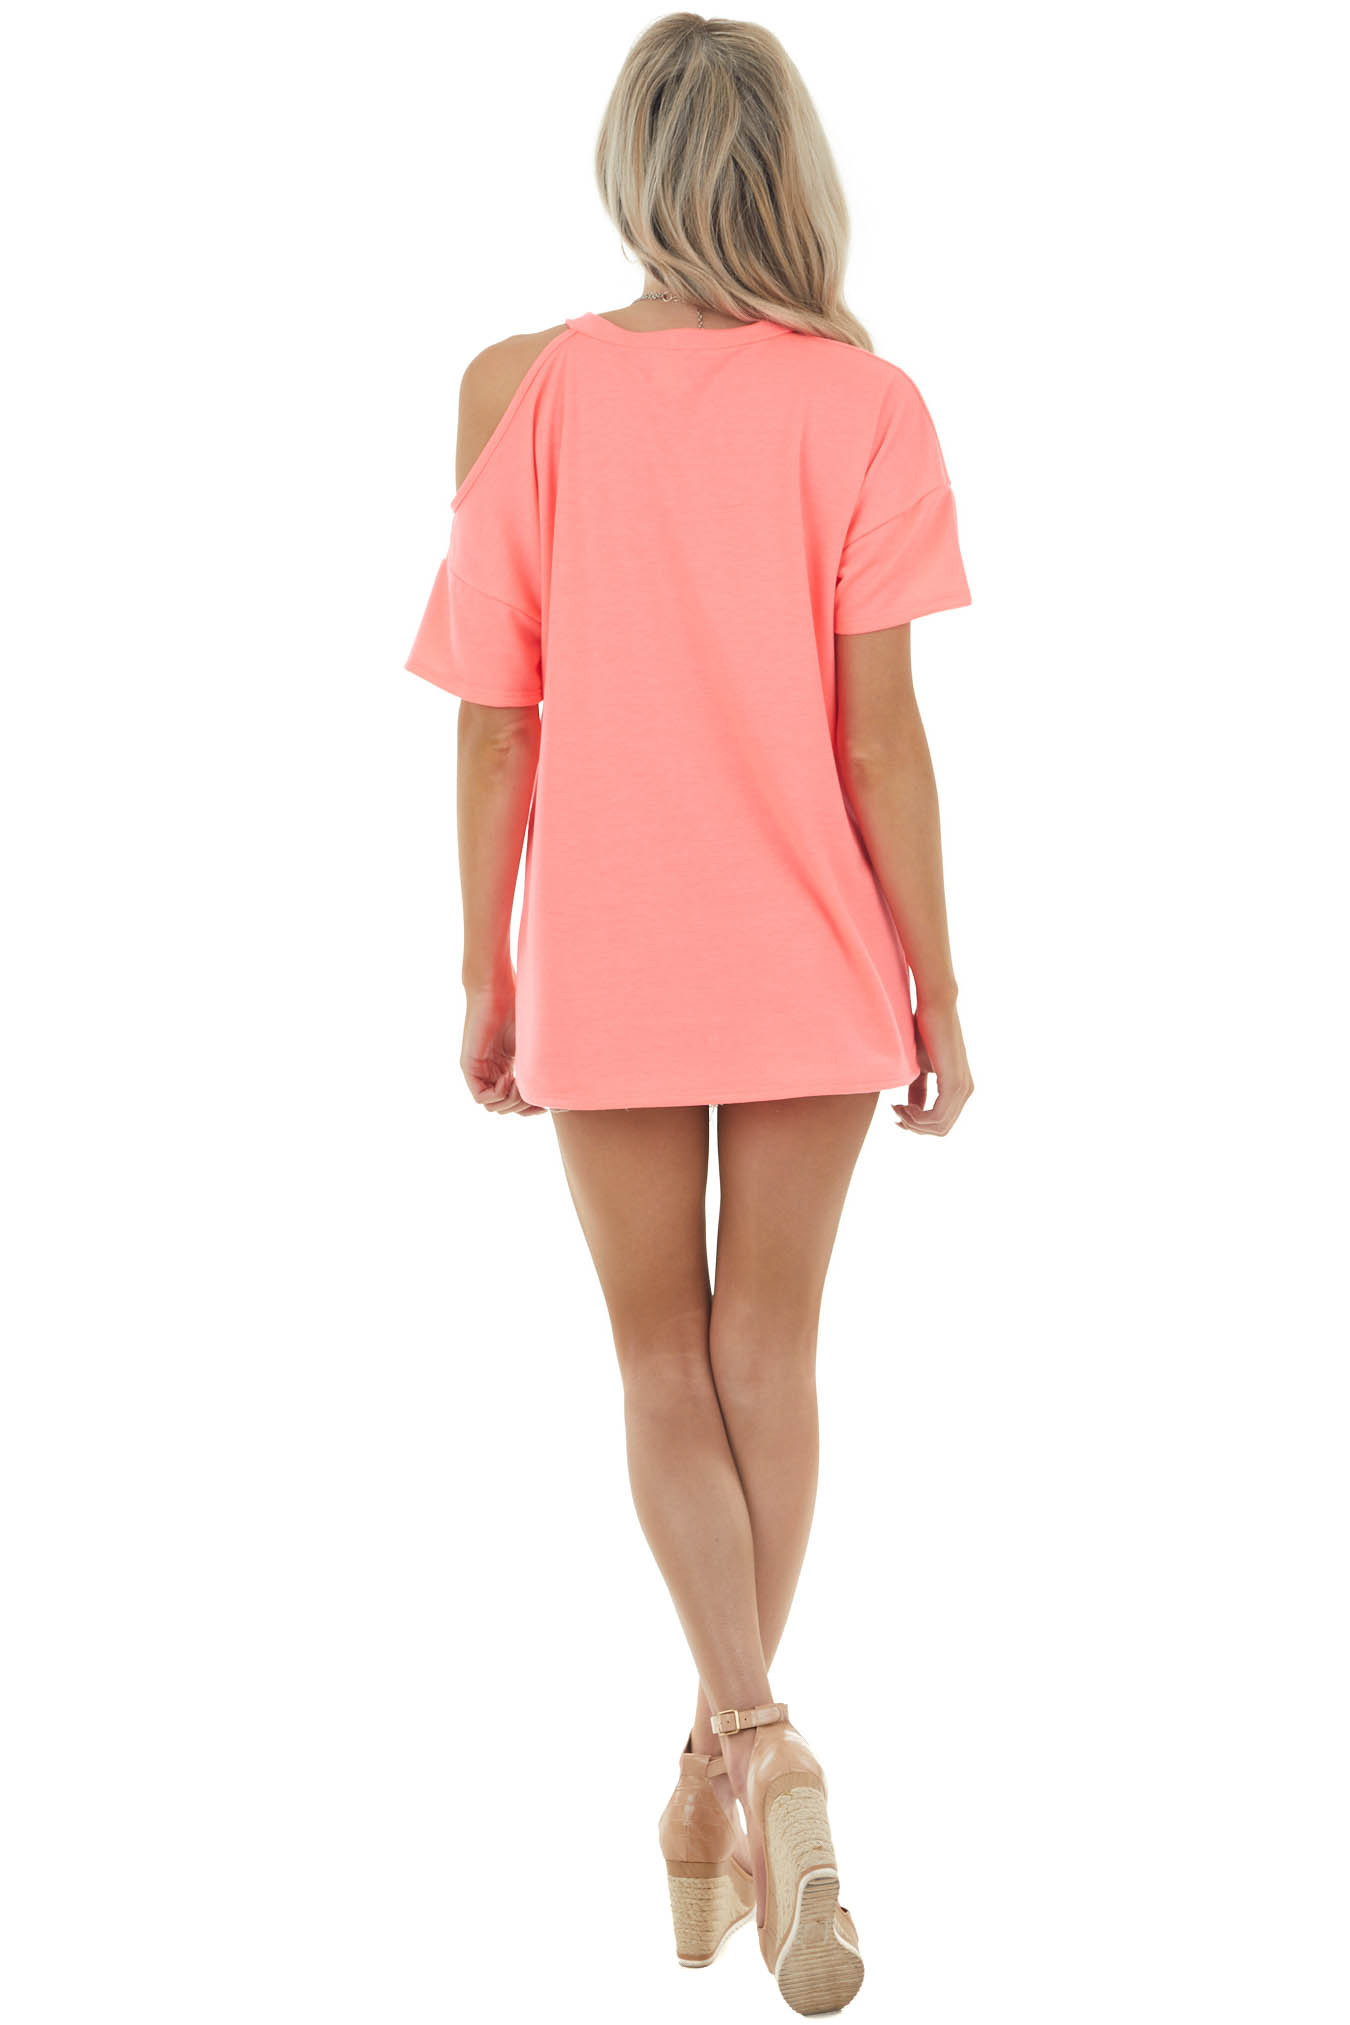 Neon Coral Short Sleeve Cold Shoulder Stretchy Knit Top